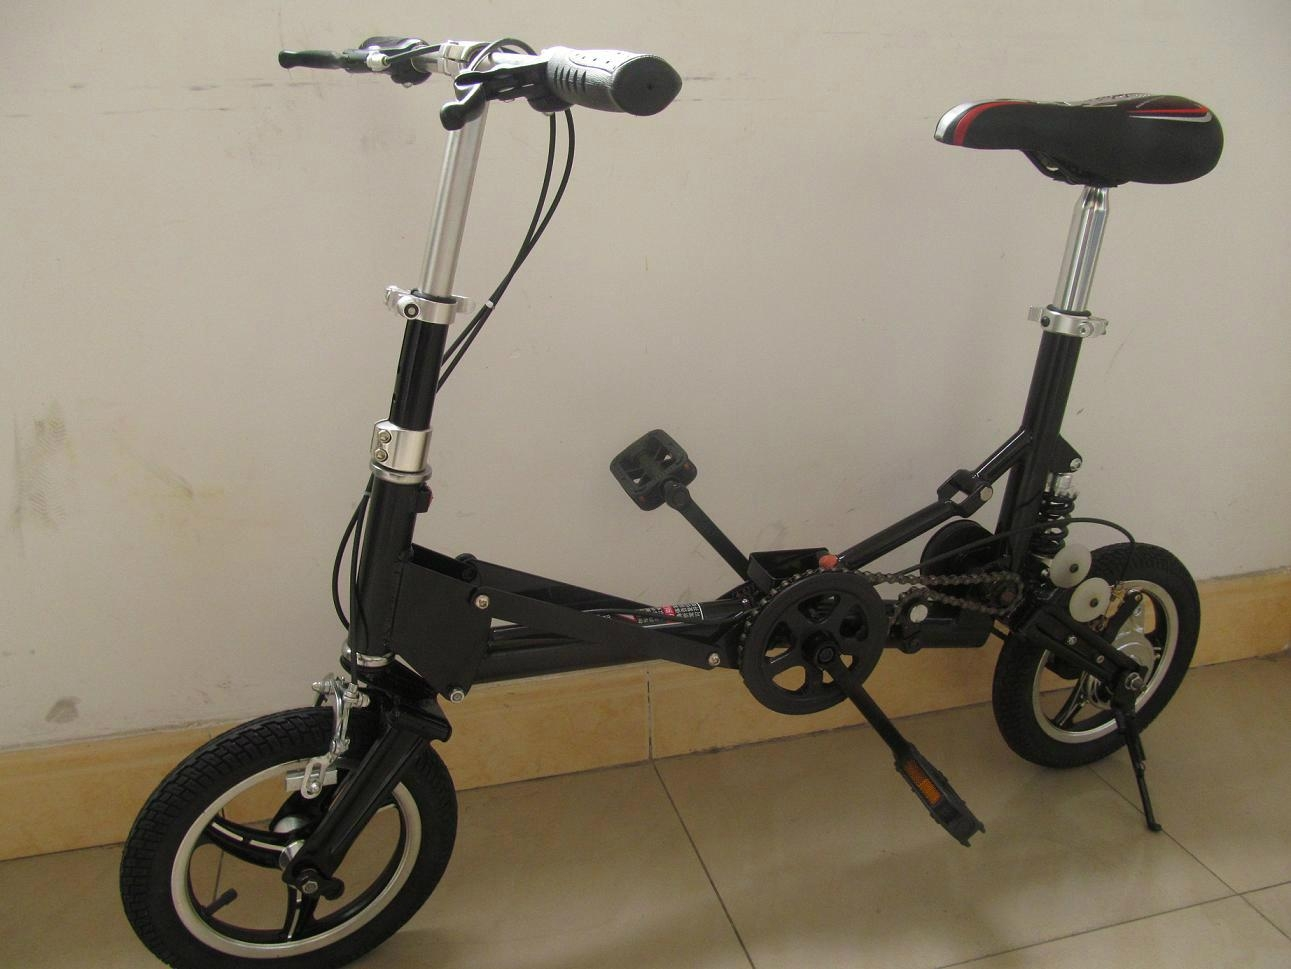 The Smallest New Design Foldable Bicycle Folding Bike 12